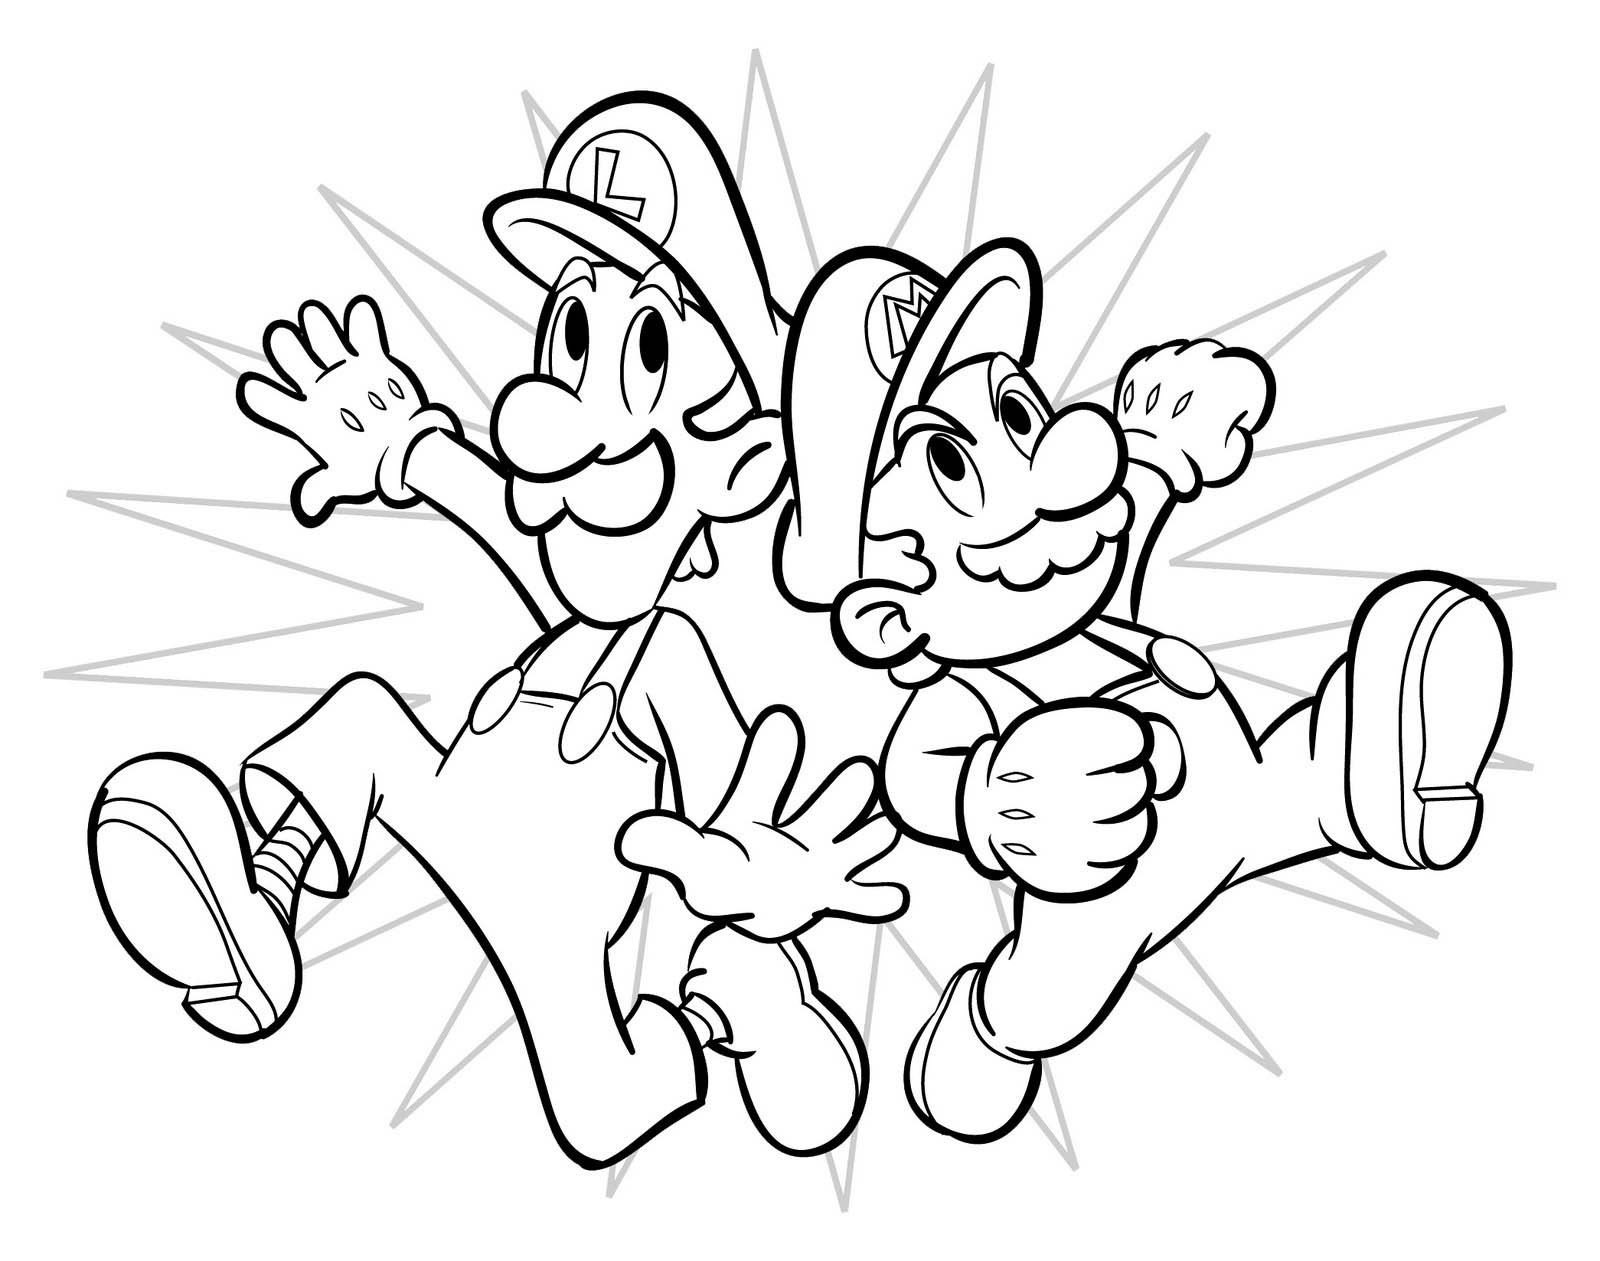 mario coloring pages to print - Printable Kid Coloring Pages